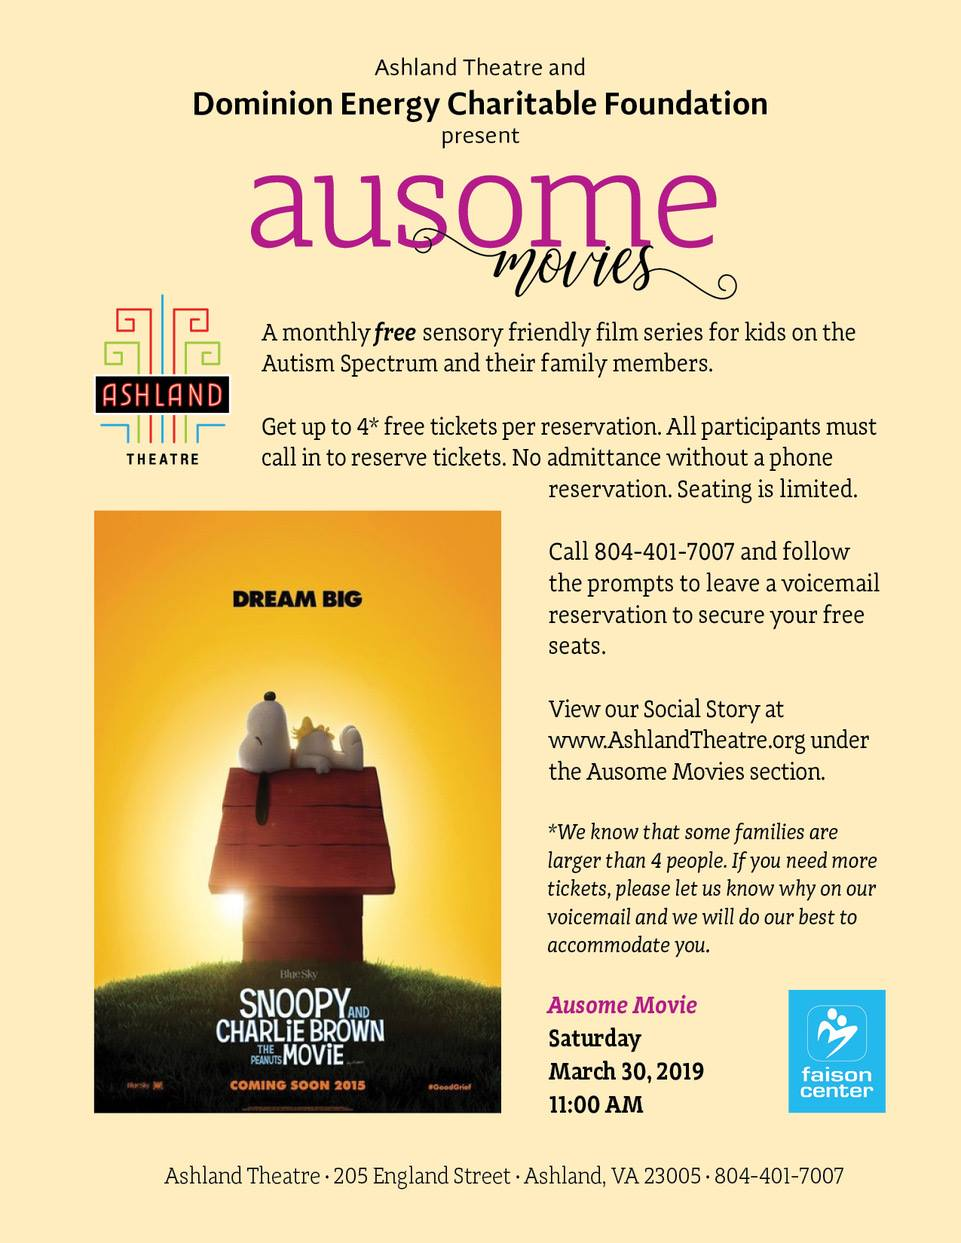 Making Theater Autism Friendly >> Sensory Friendly Movie On March 30 Knowdifferent Net